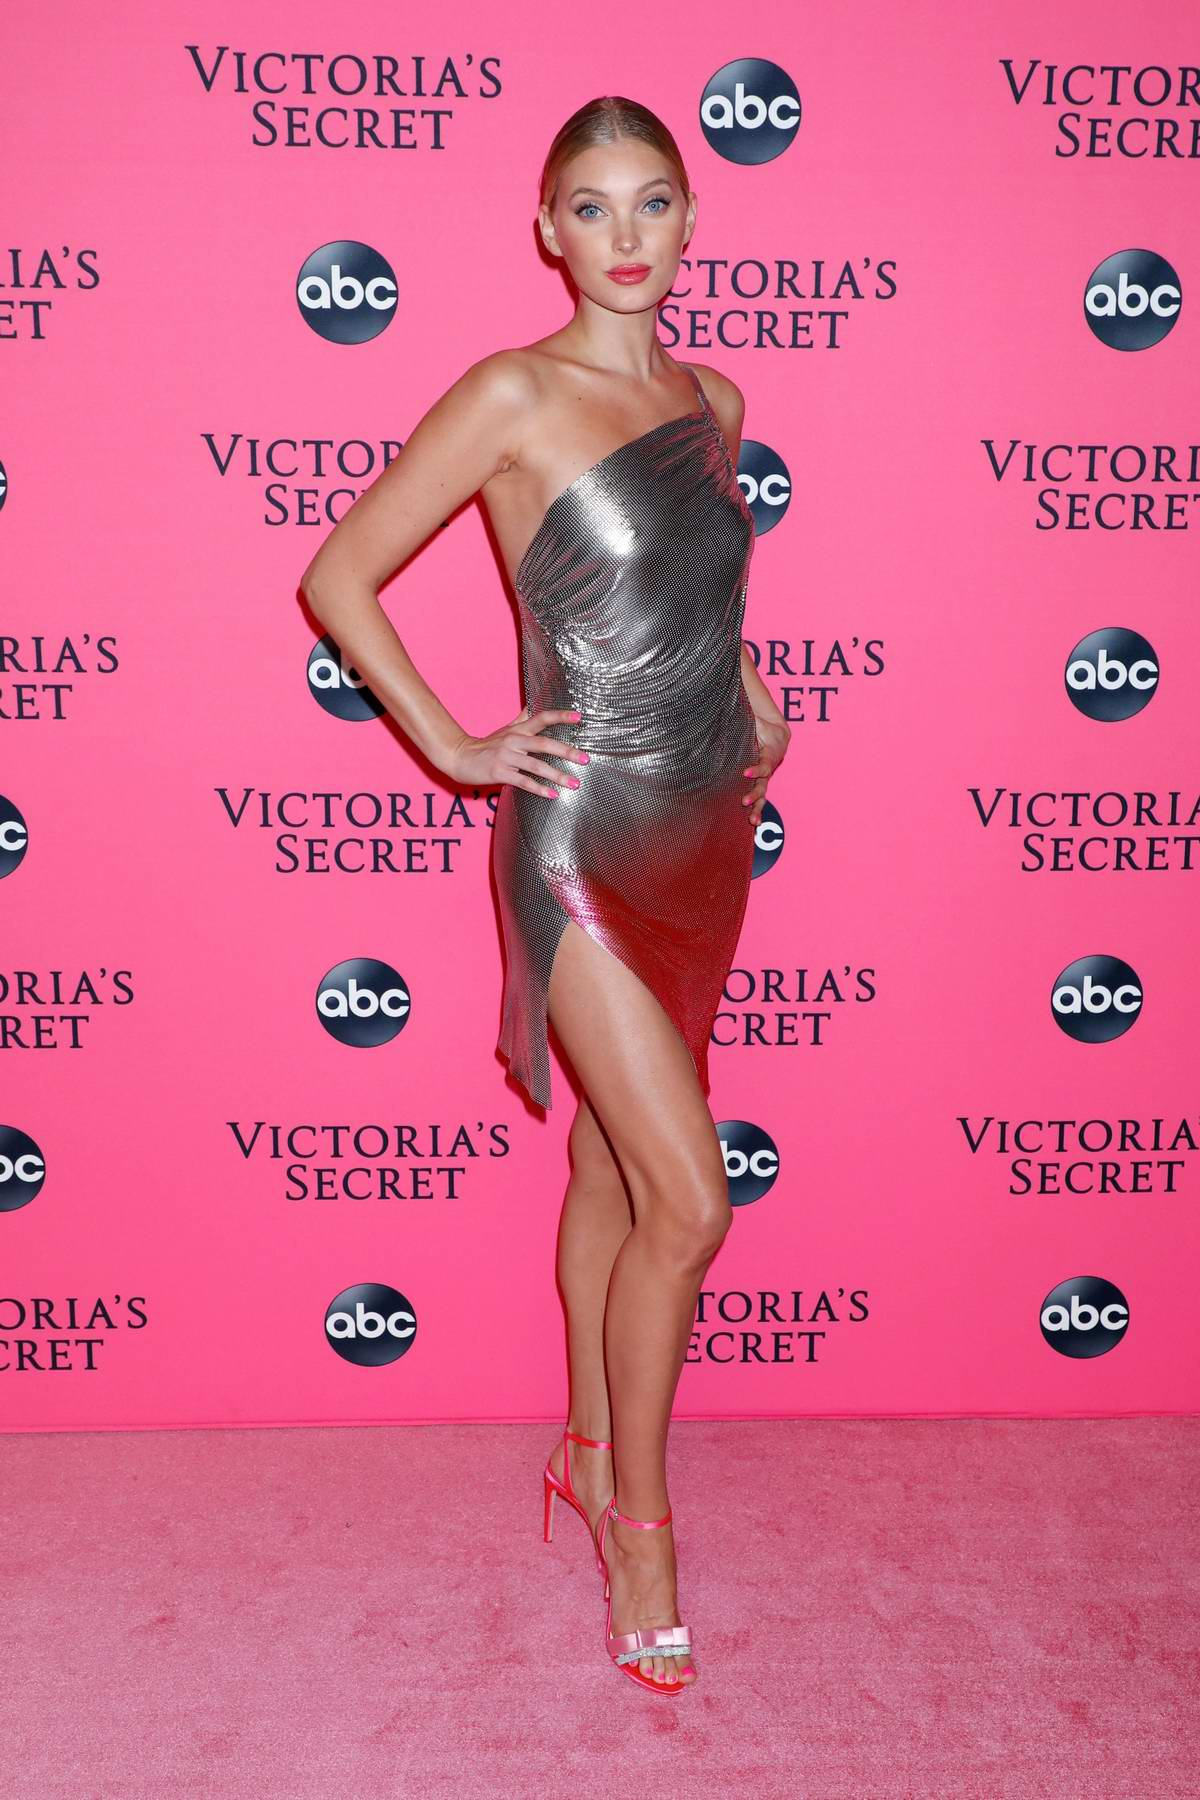 Elsa Hosk attends the 2018 Victoria's Secret Fashion Show Viewing Party at Spring Studios in New York City